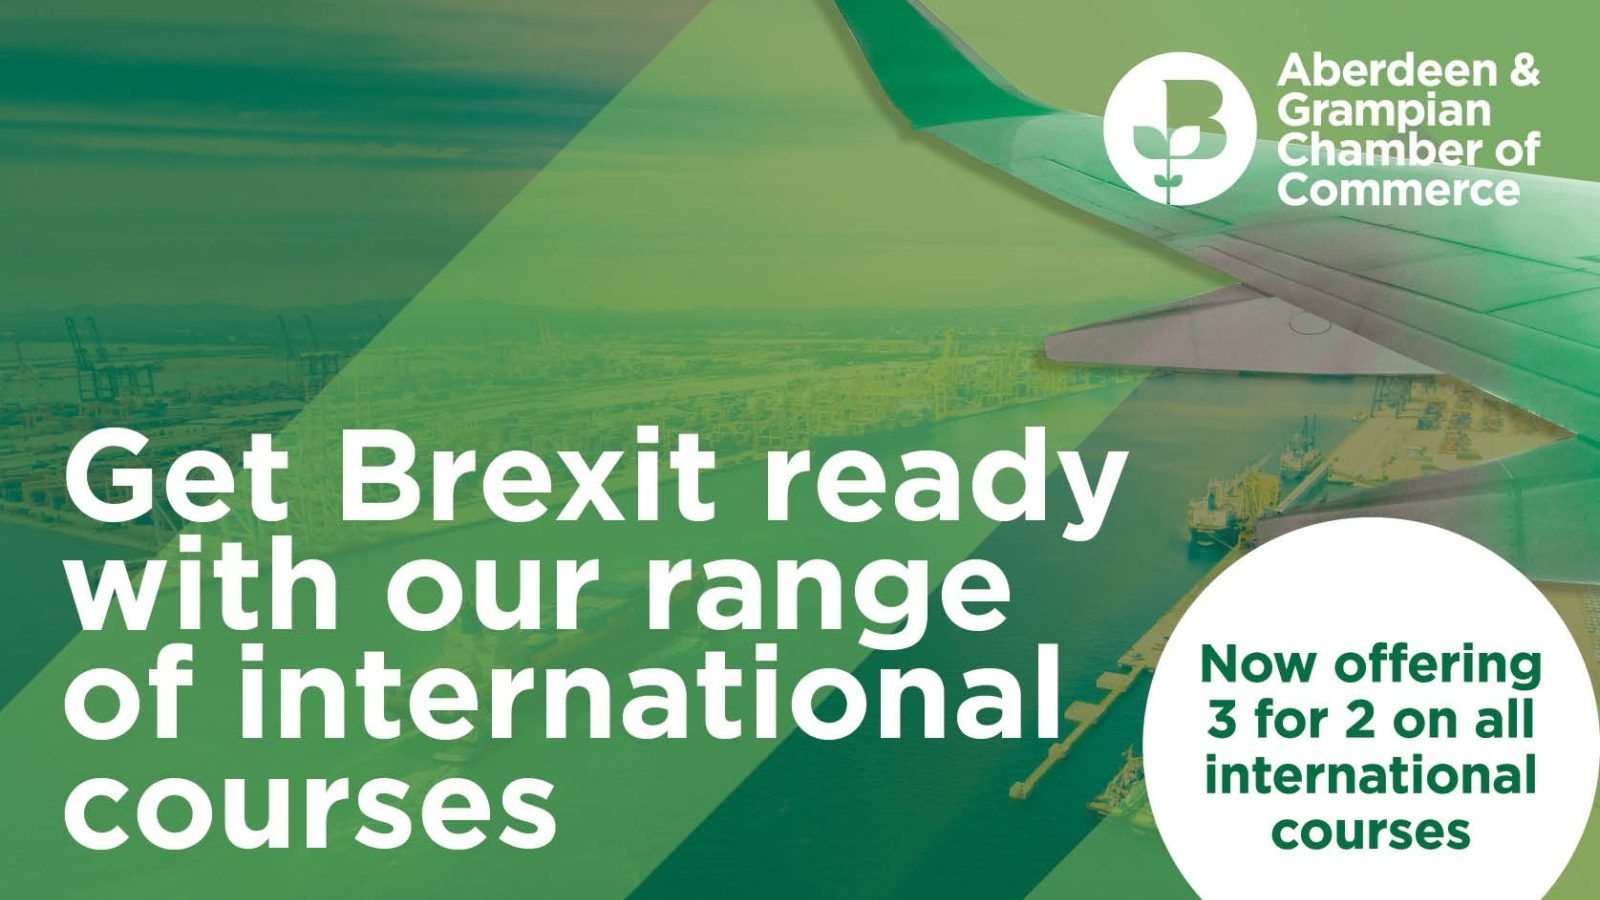 Custom Grant Schemes: Funding is available to cover 100% of your training costs to get Brexit ready